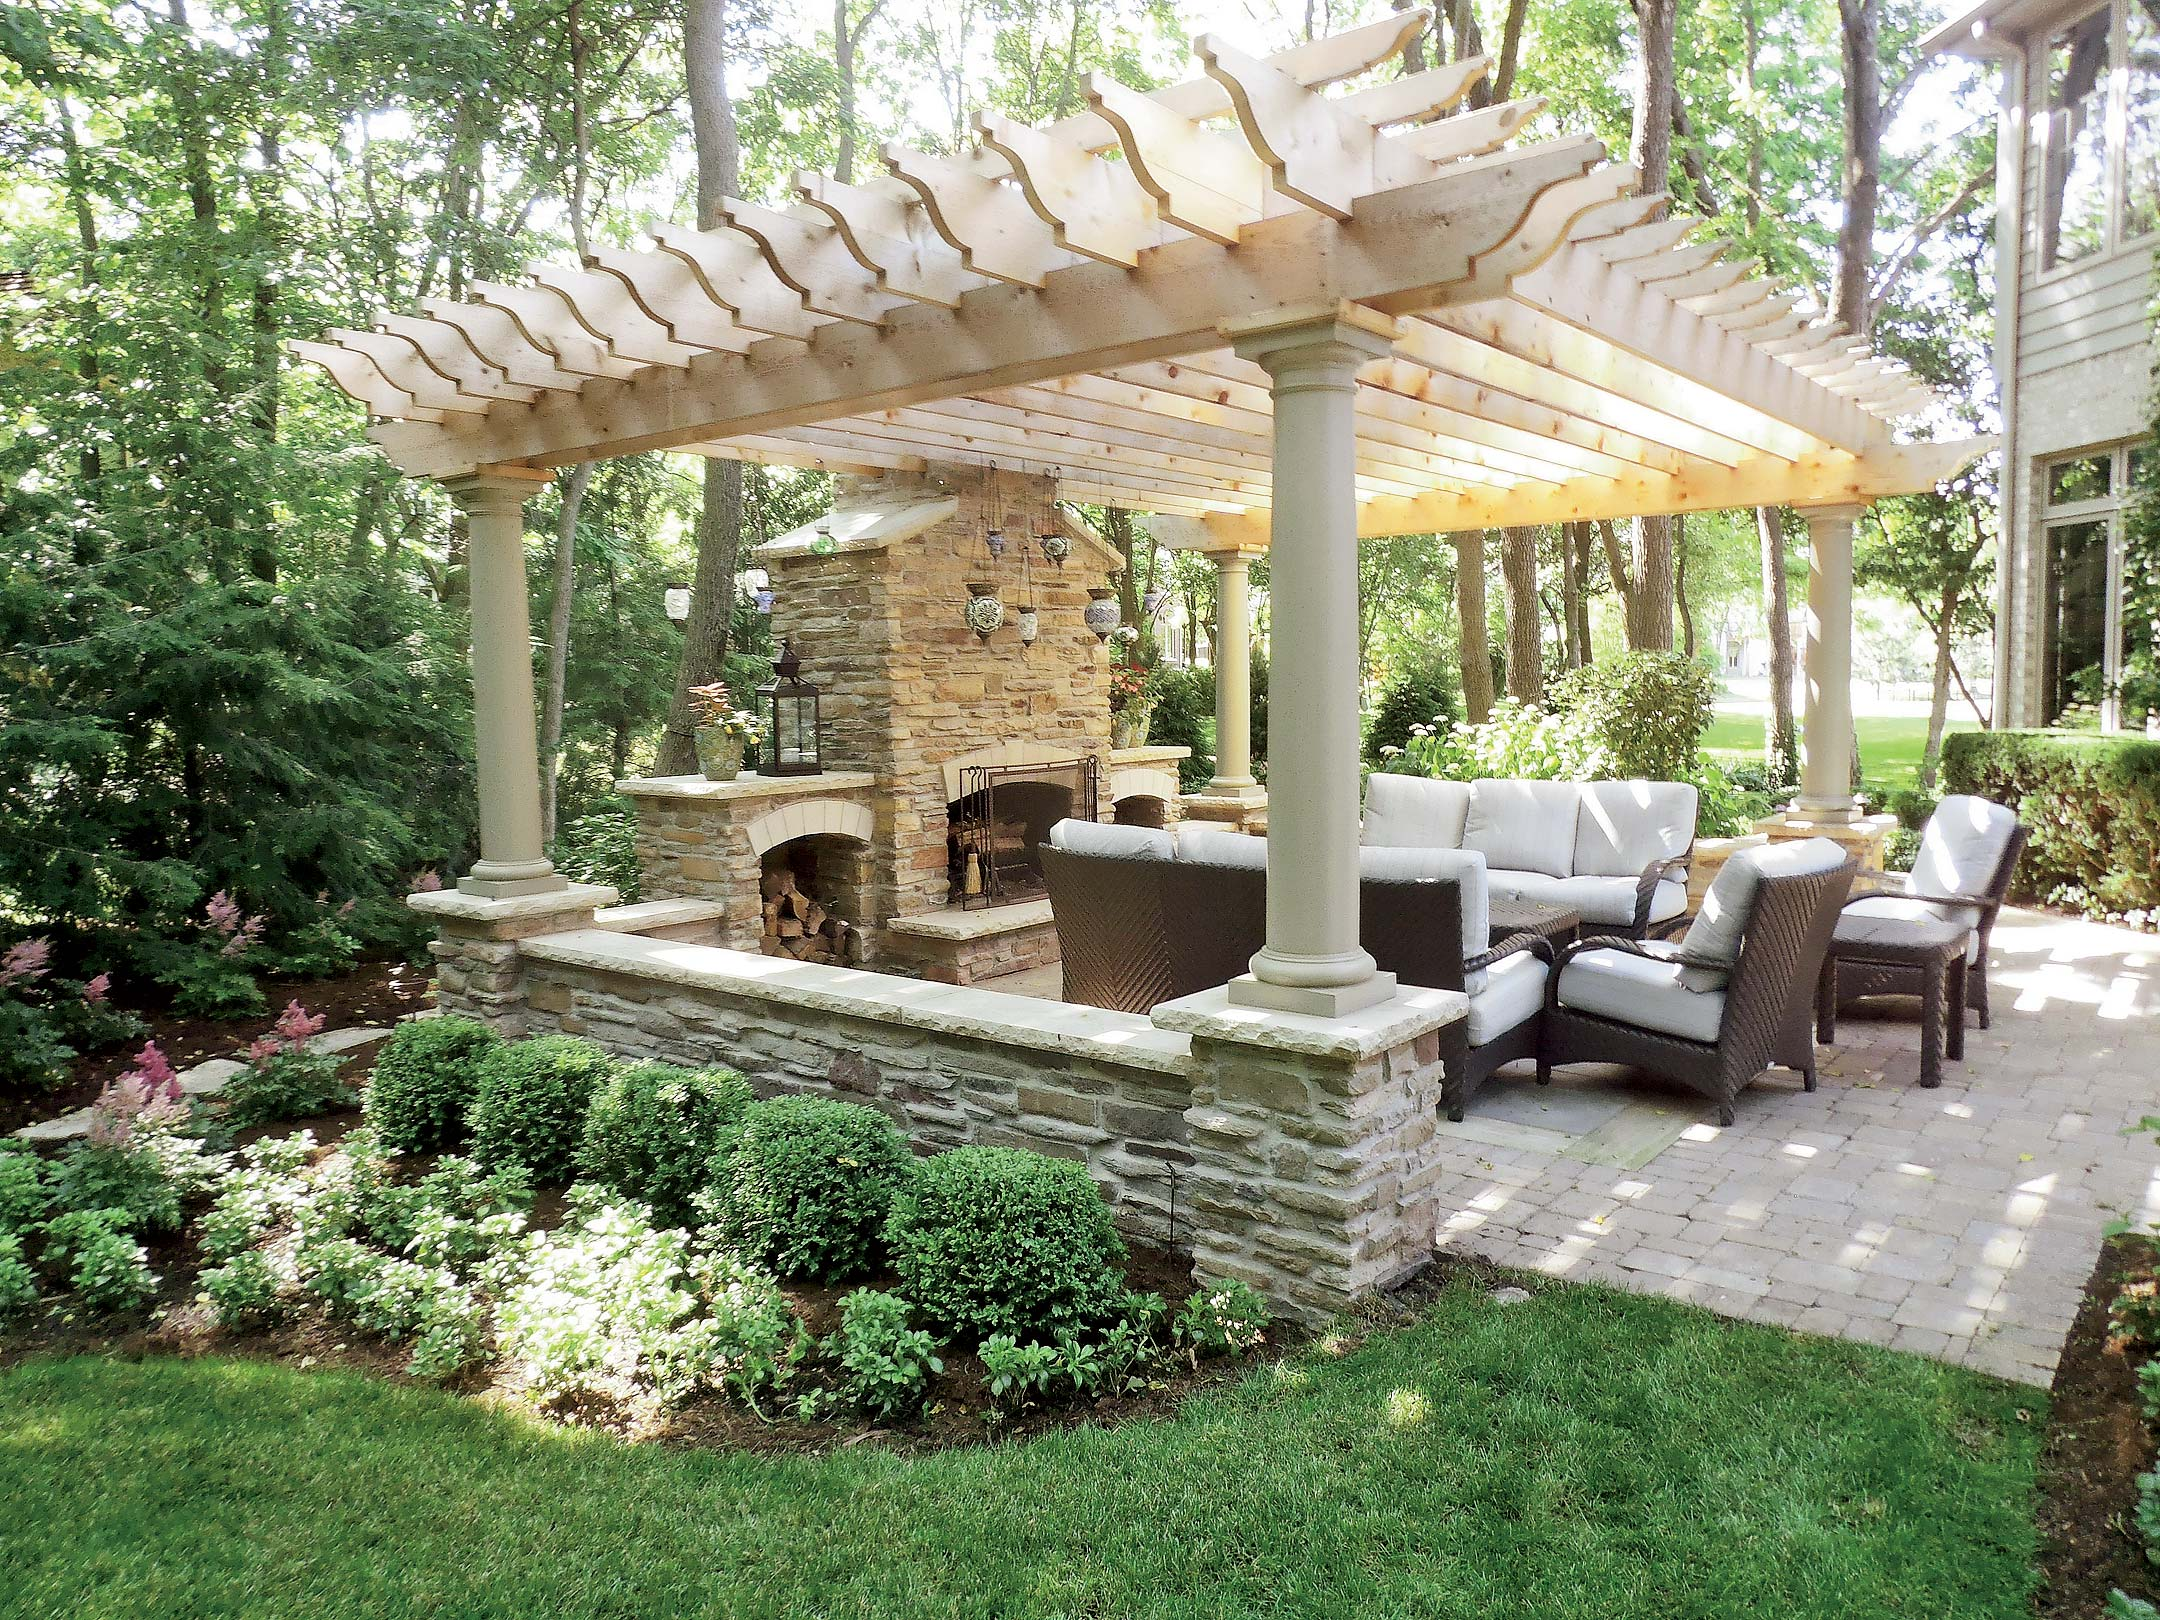 Fireplace And Patio 1000 43 Images About Garden Ponds Decks Patios Fire Pits